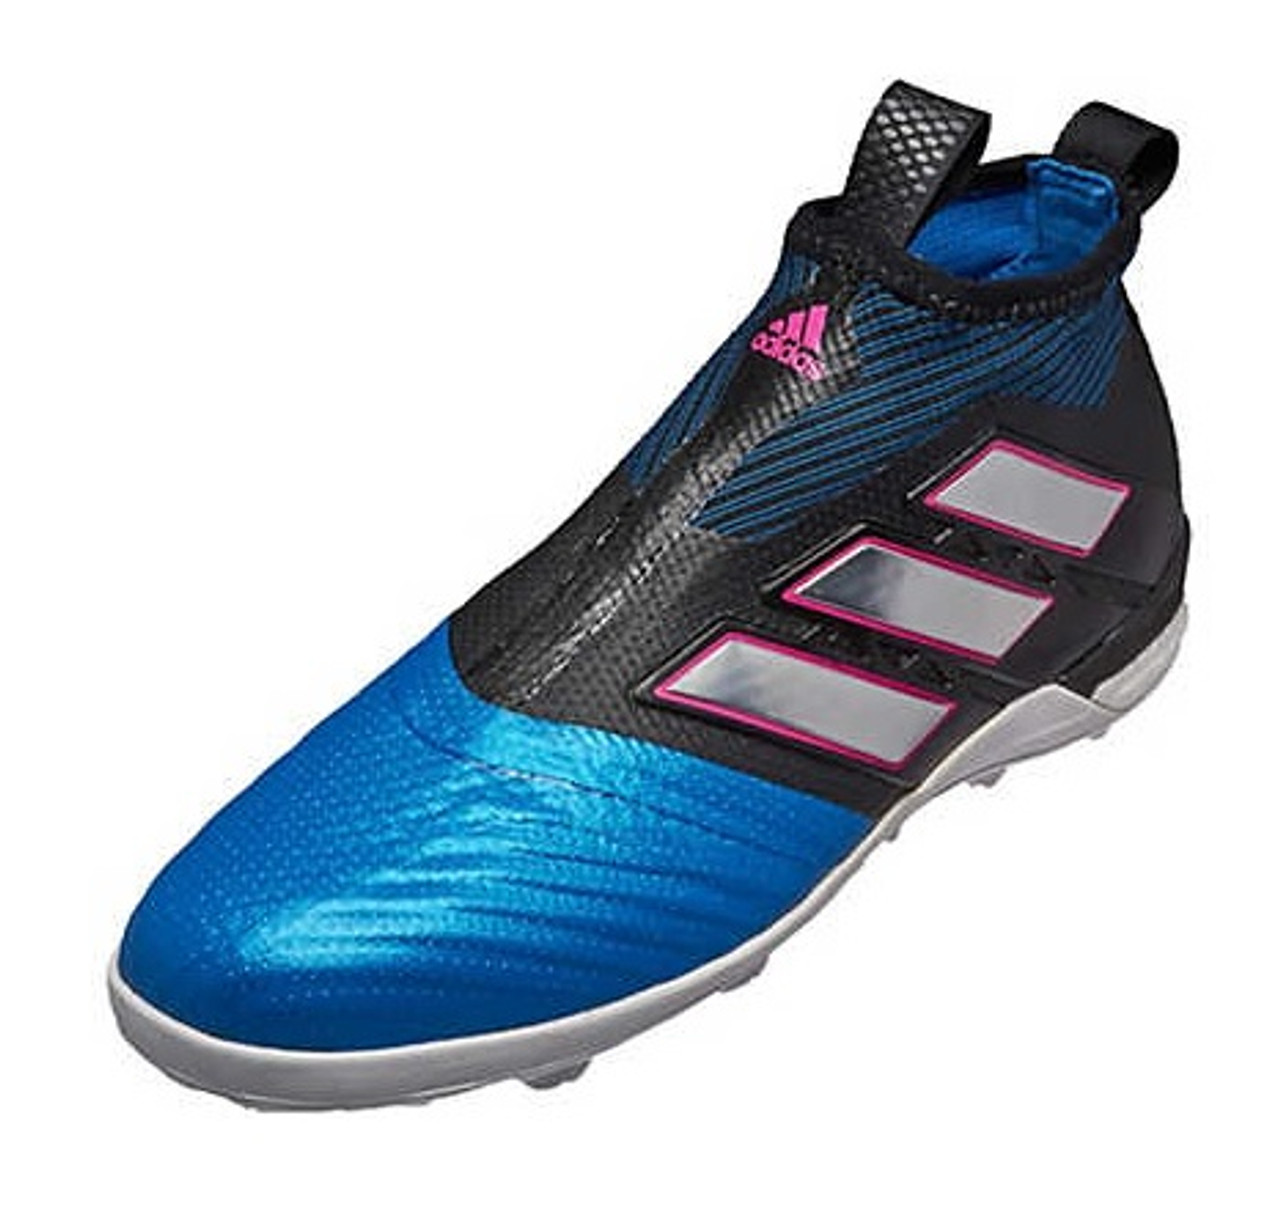 competitive price d0f7f 57b26 adidas ACE TANGO 17+ PURECONTROL TF - Black White Blue (5519) - ohp soccer